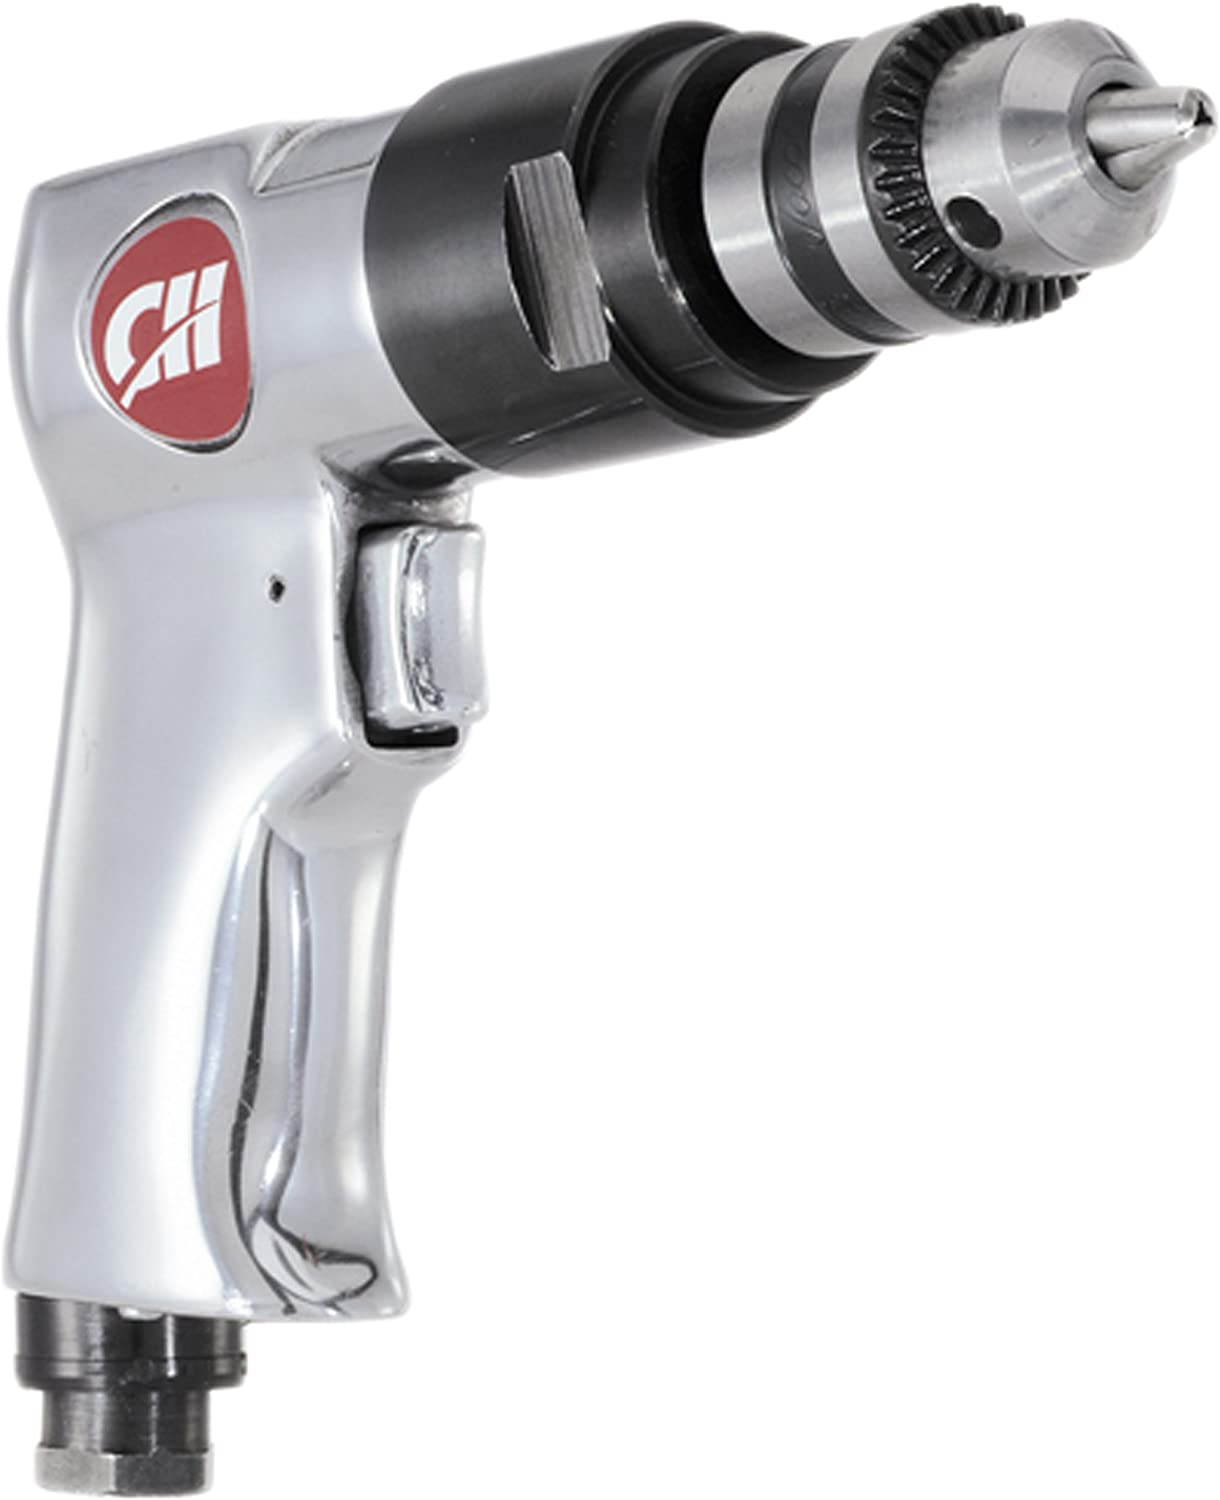 Campbell Hausfeld TL1006 3/8-Inch Drill with Chuck